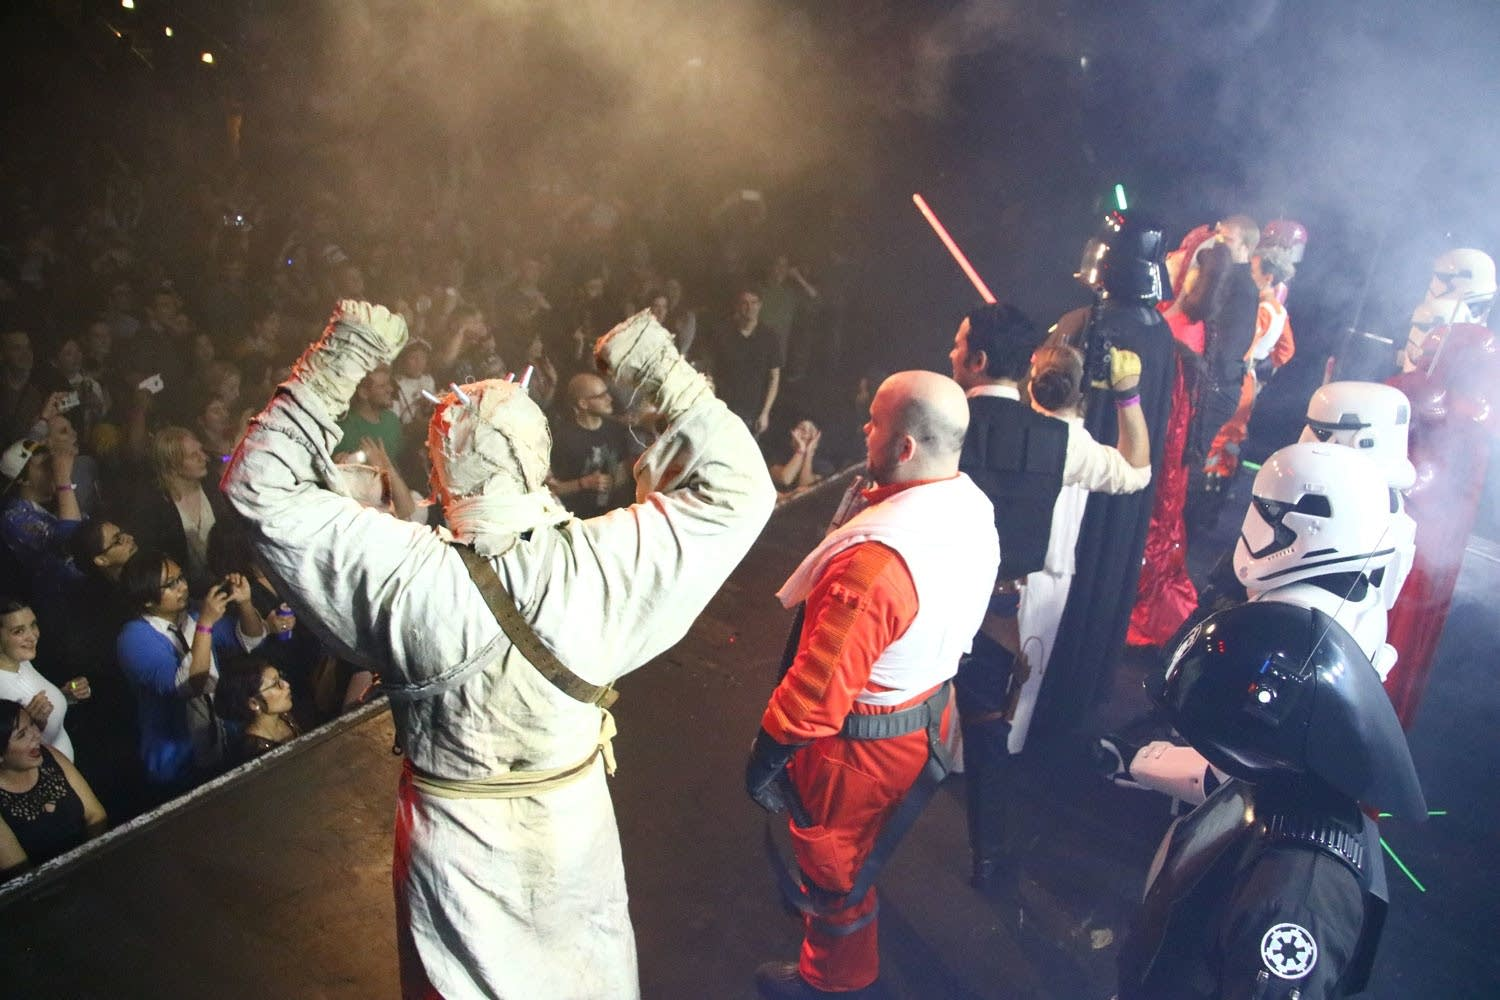 Star Wars characaters onstage at First Avenue 4